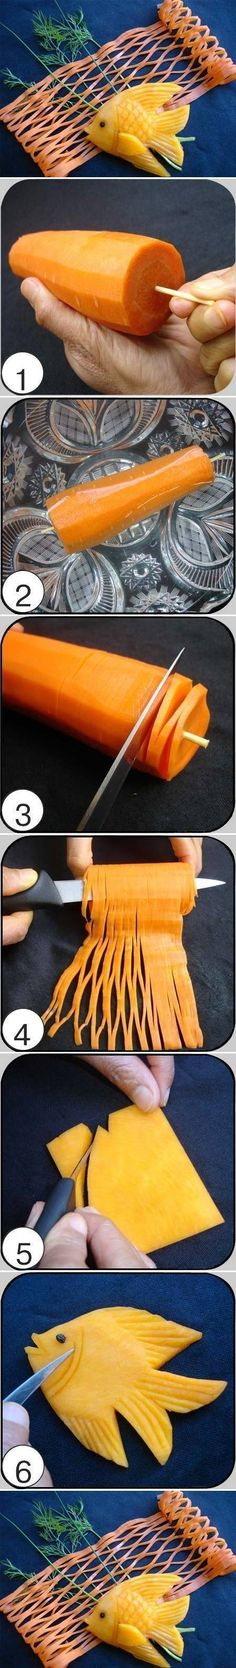 DIY Carrot Fish and Net DIY Carrot Fish and Net. NO RECIPE